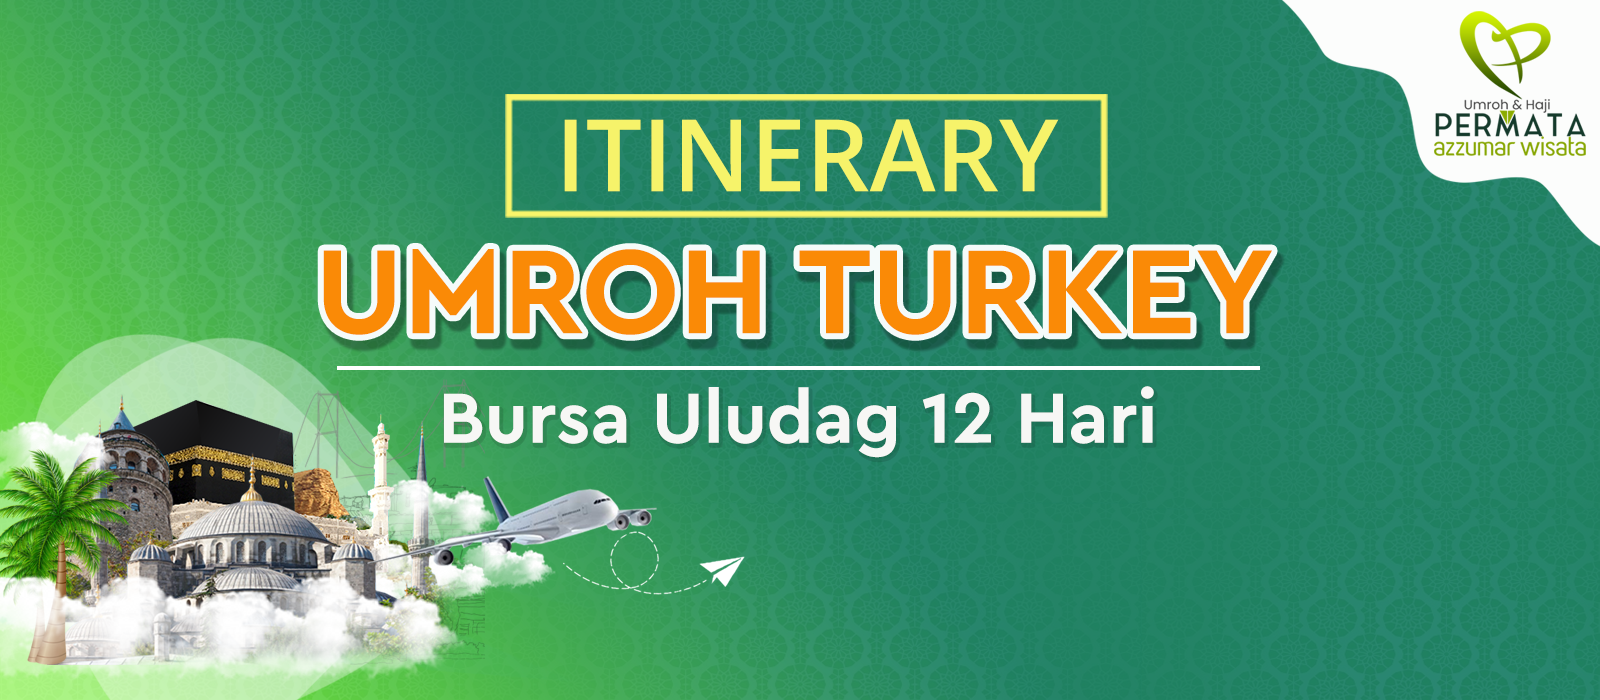 program Umroh plus turki uludag 12 hari